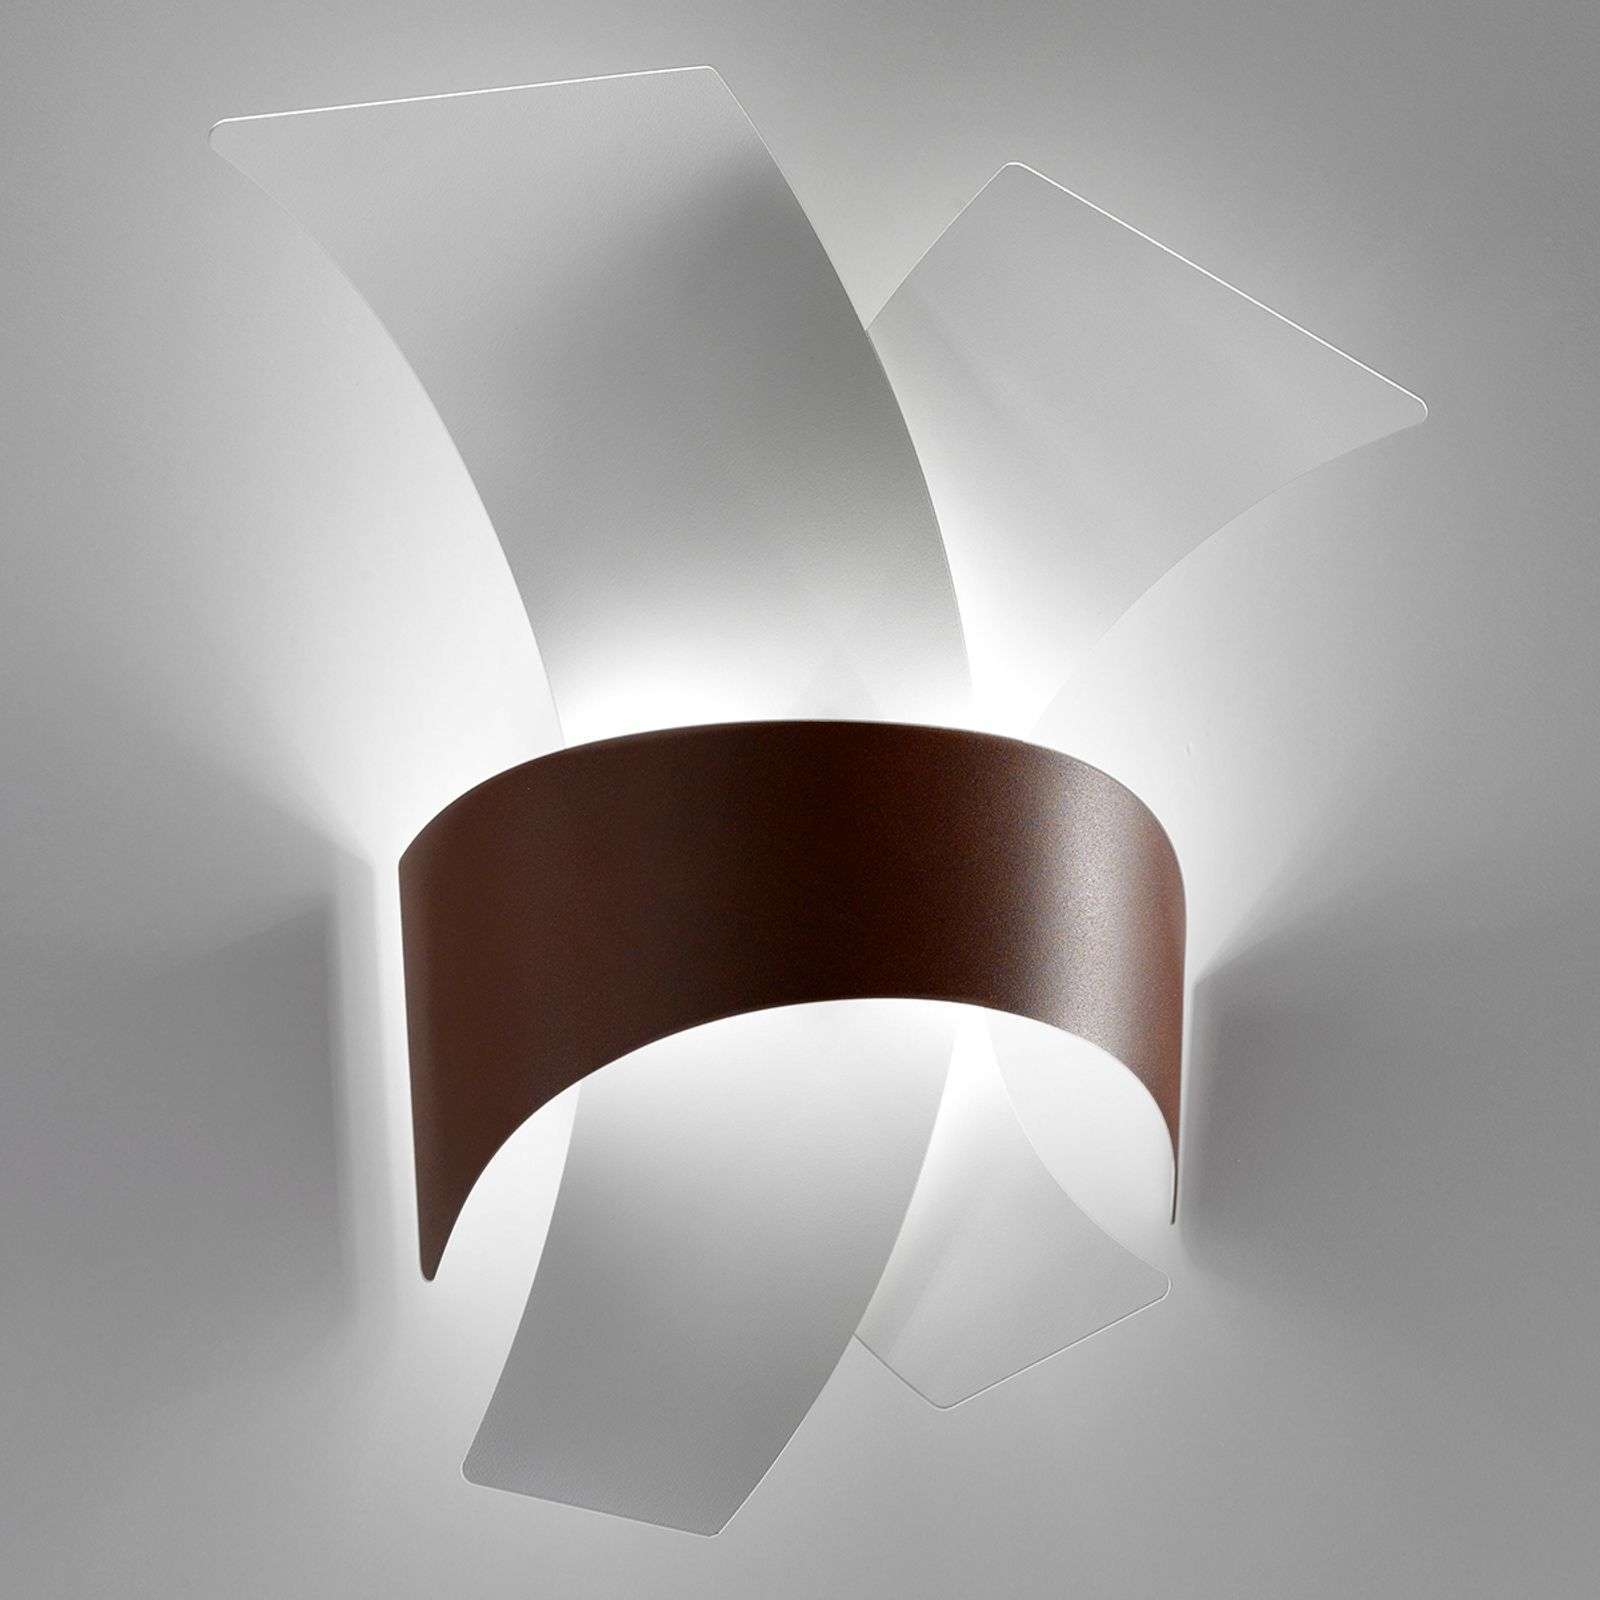 Calypso - applique a LED con archi di metallo